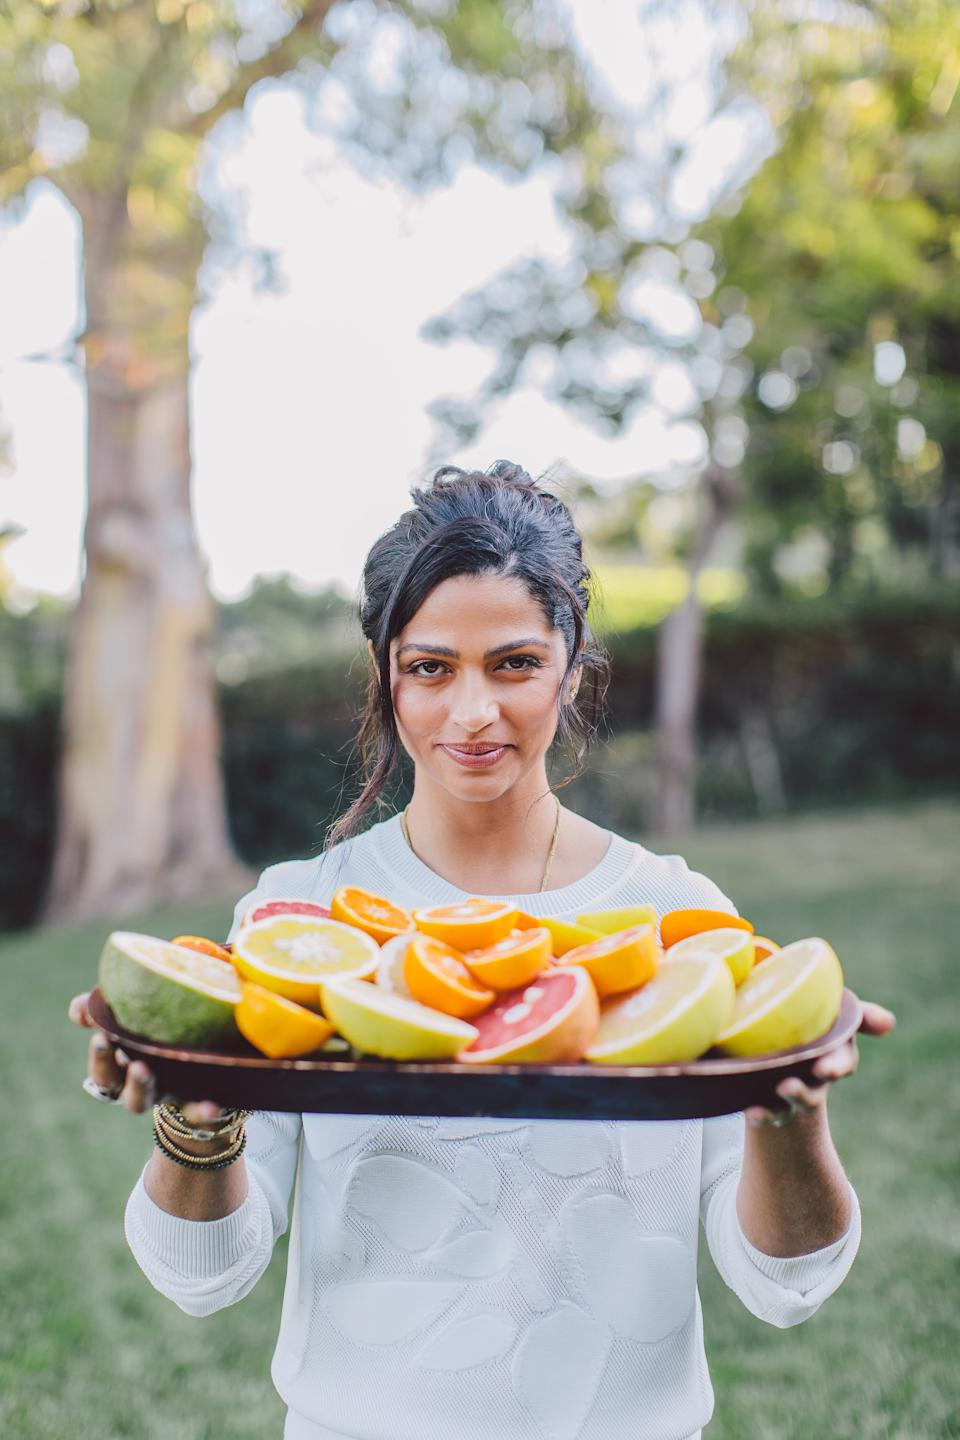 Camila Alves McConaughey recommends eating fruit during your sugar detox: your body naturally occurring sugars differently than added sugars. (Photo: Ashley Burns)